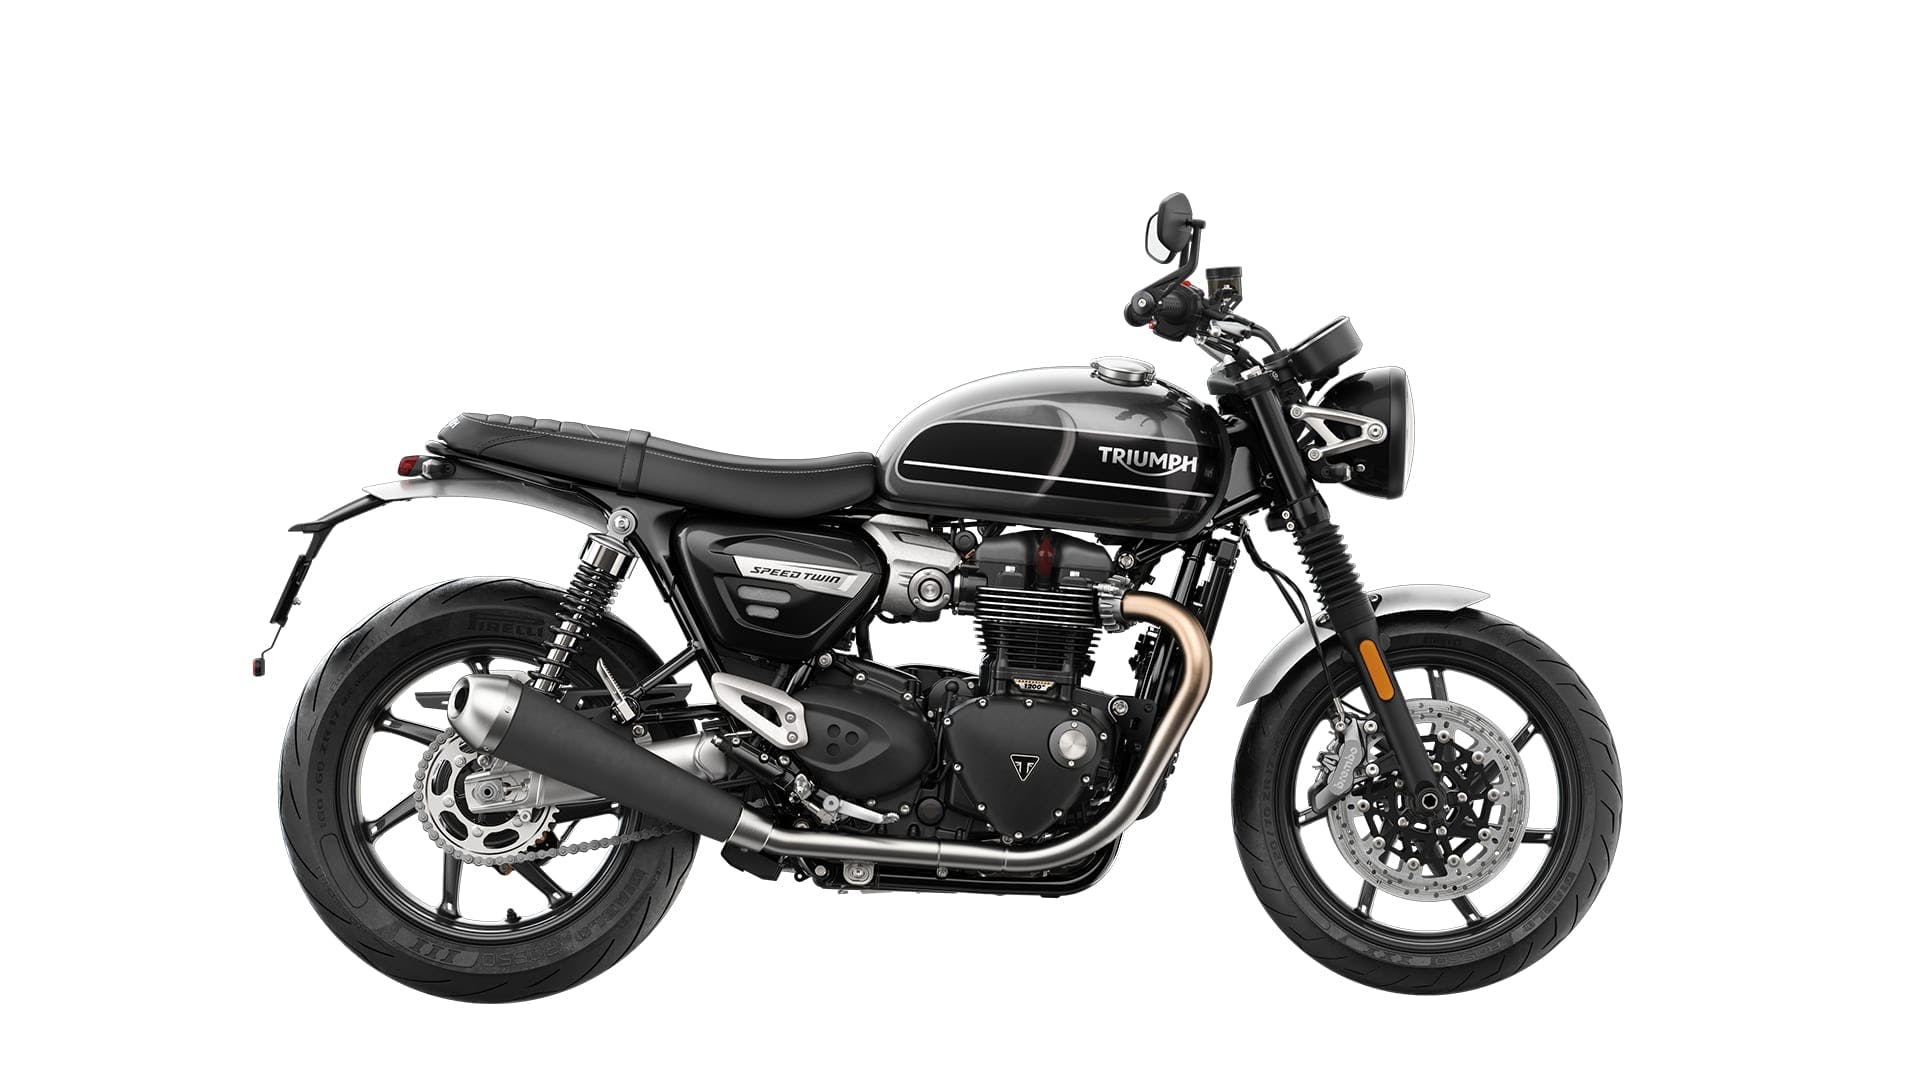 TRIUMPH BONNEVILLE SPEED TWIN in silver ice and storm grey colour